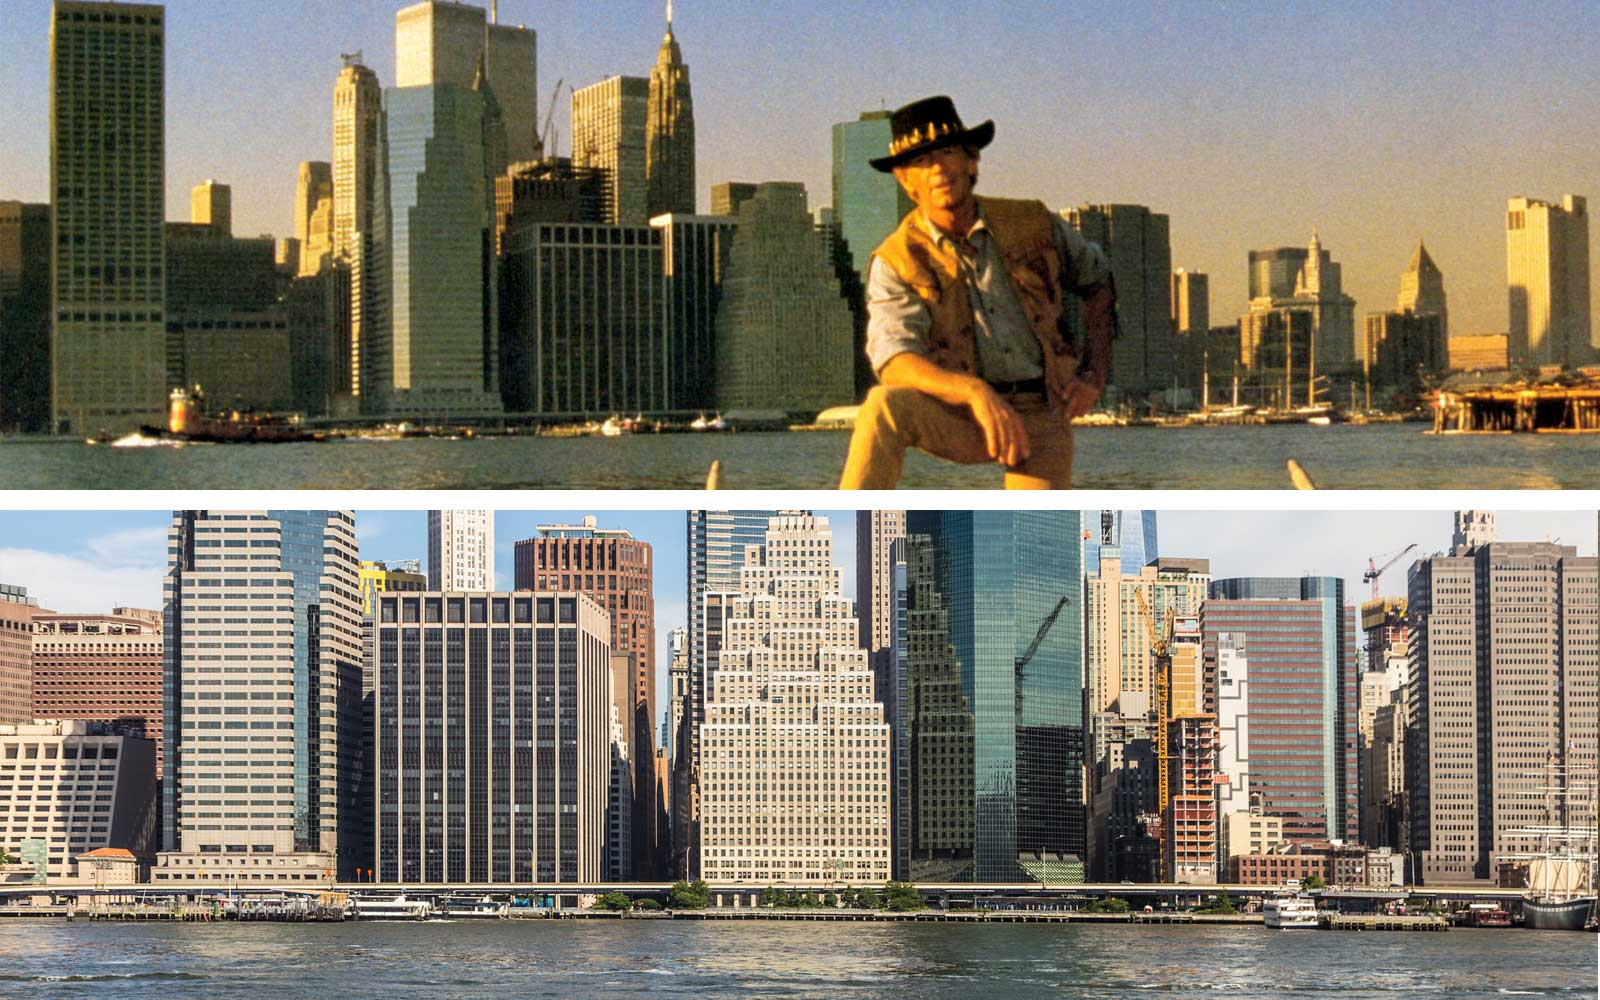 CROCODILE DUNDEE II. Image shot 1988 and Manhattan financial district in New York City in 2017